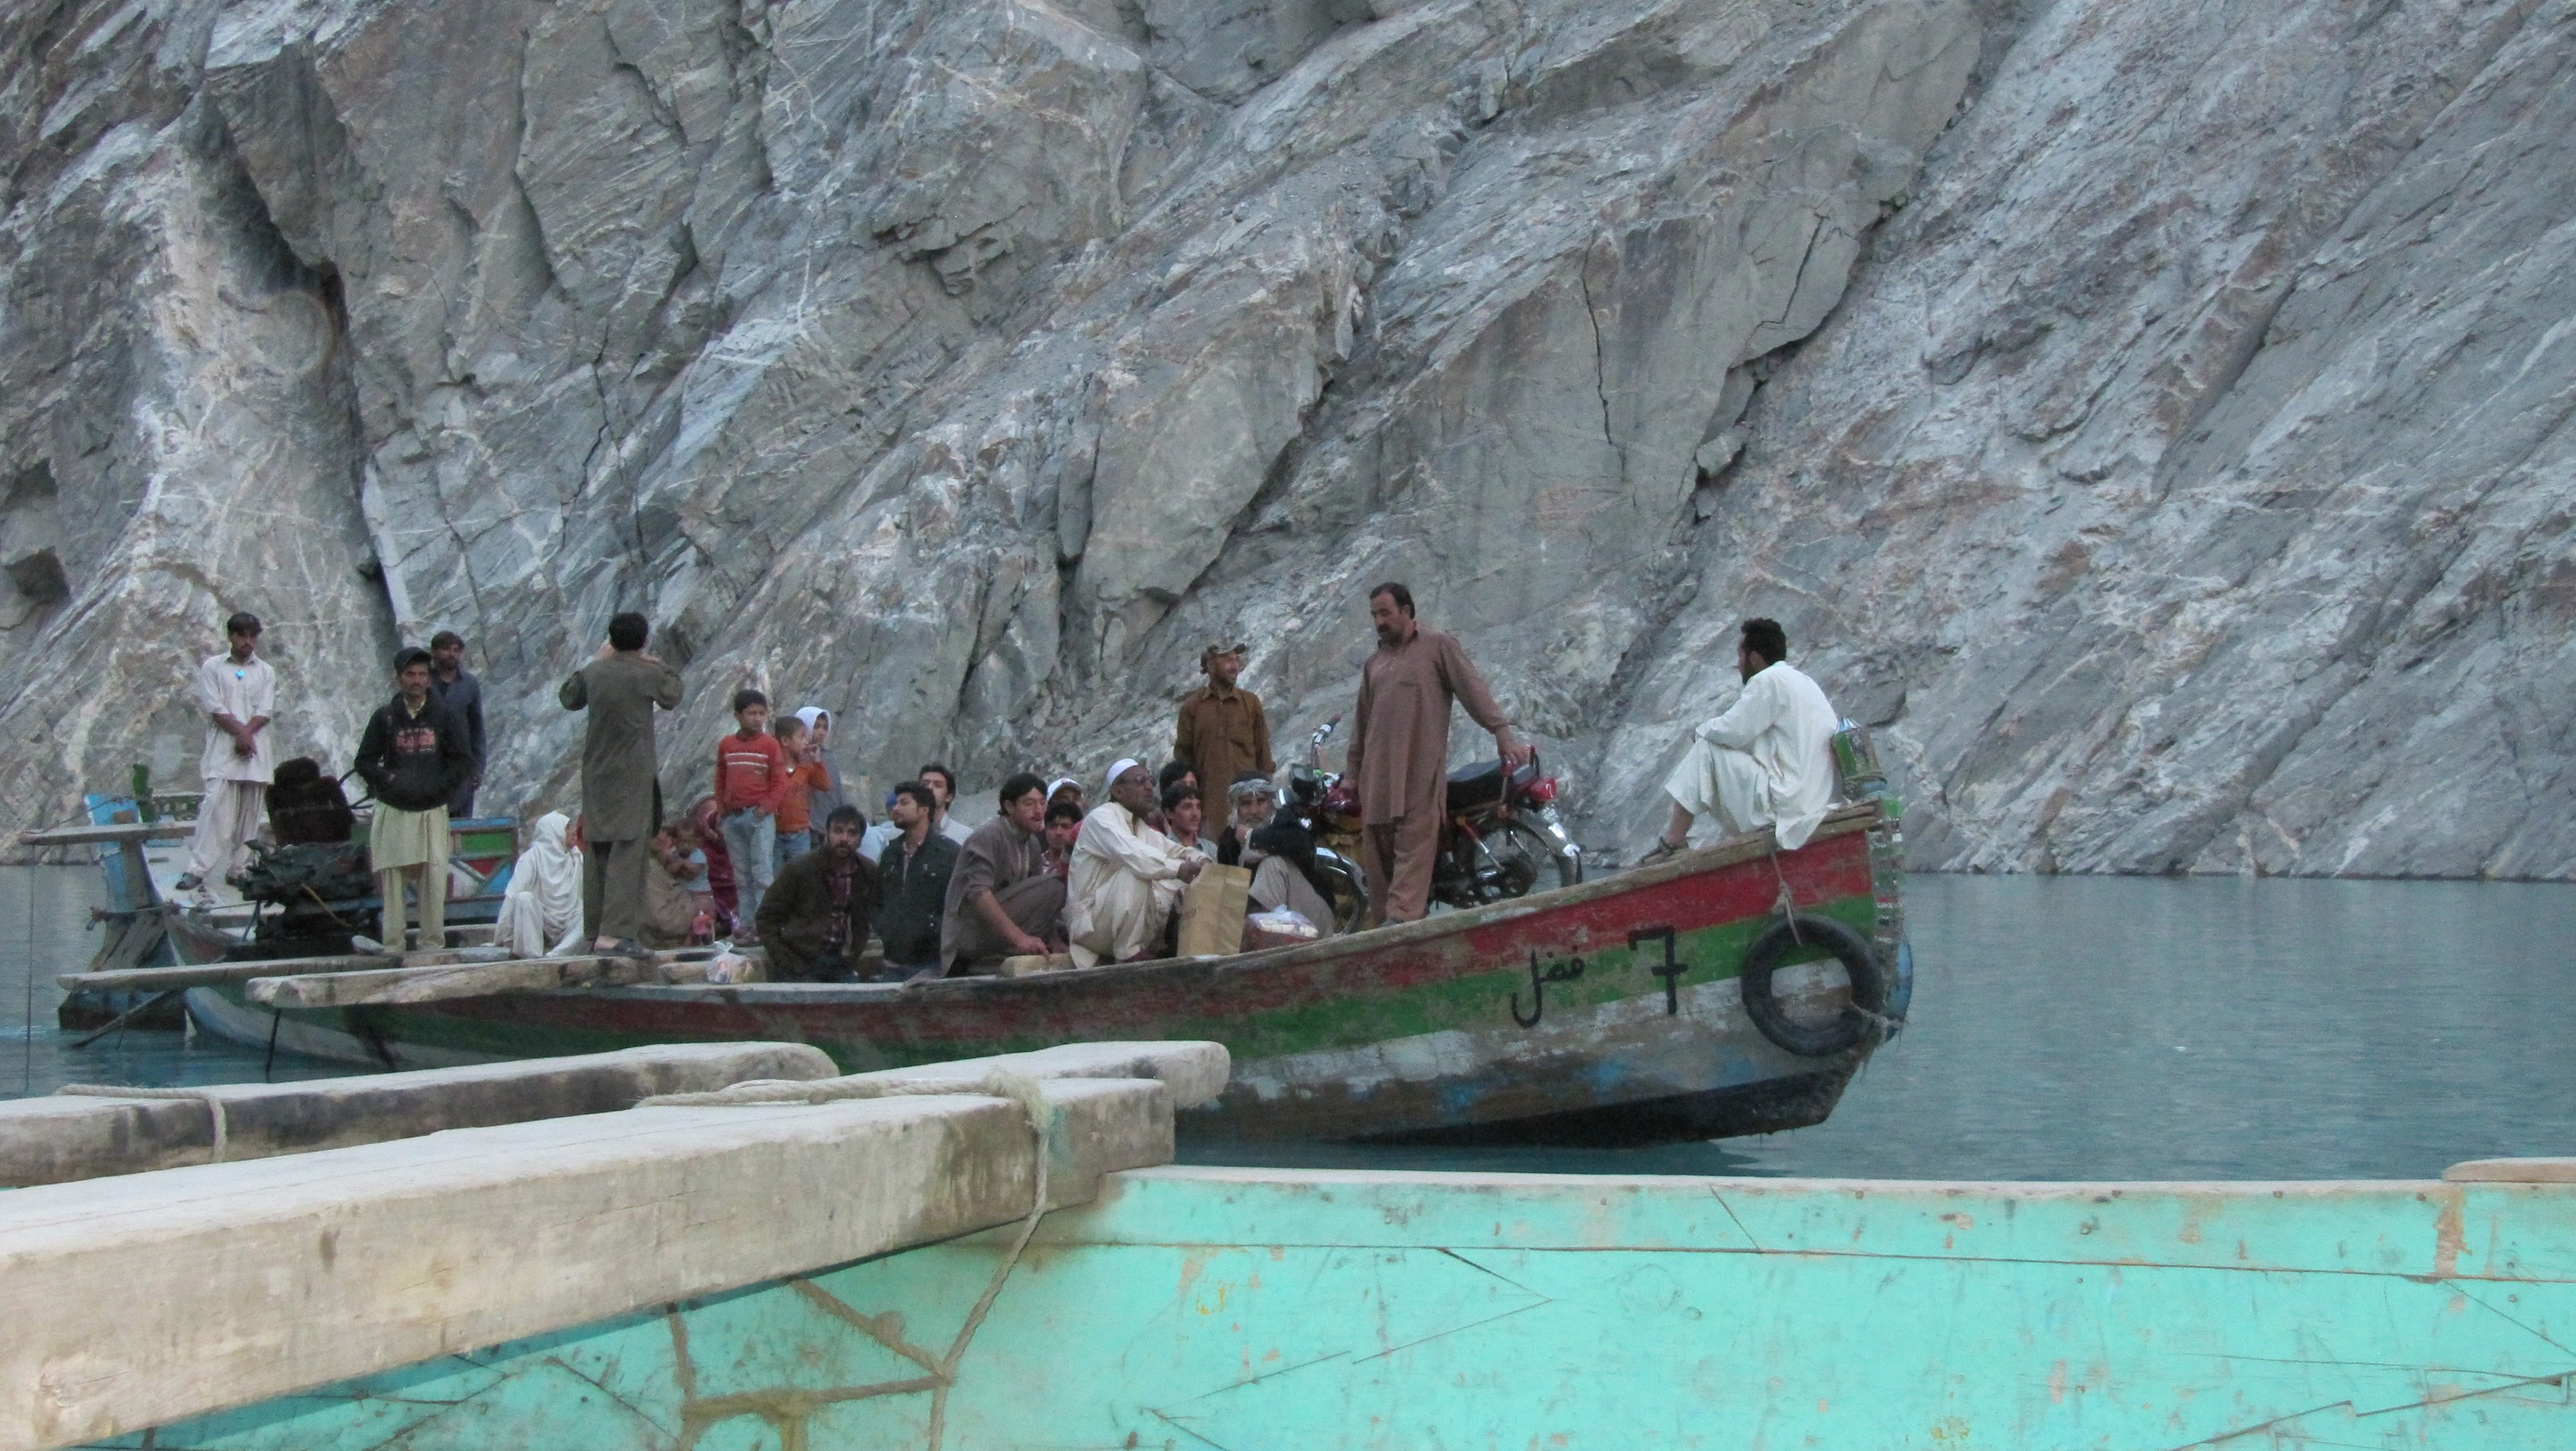 The 21-kilometer Attabad Lake was created by a landslide in 2010. Currently to cross it, goods have to be hauled onto boats.